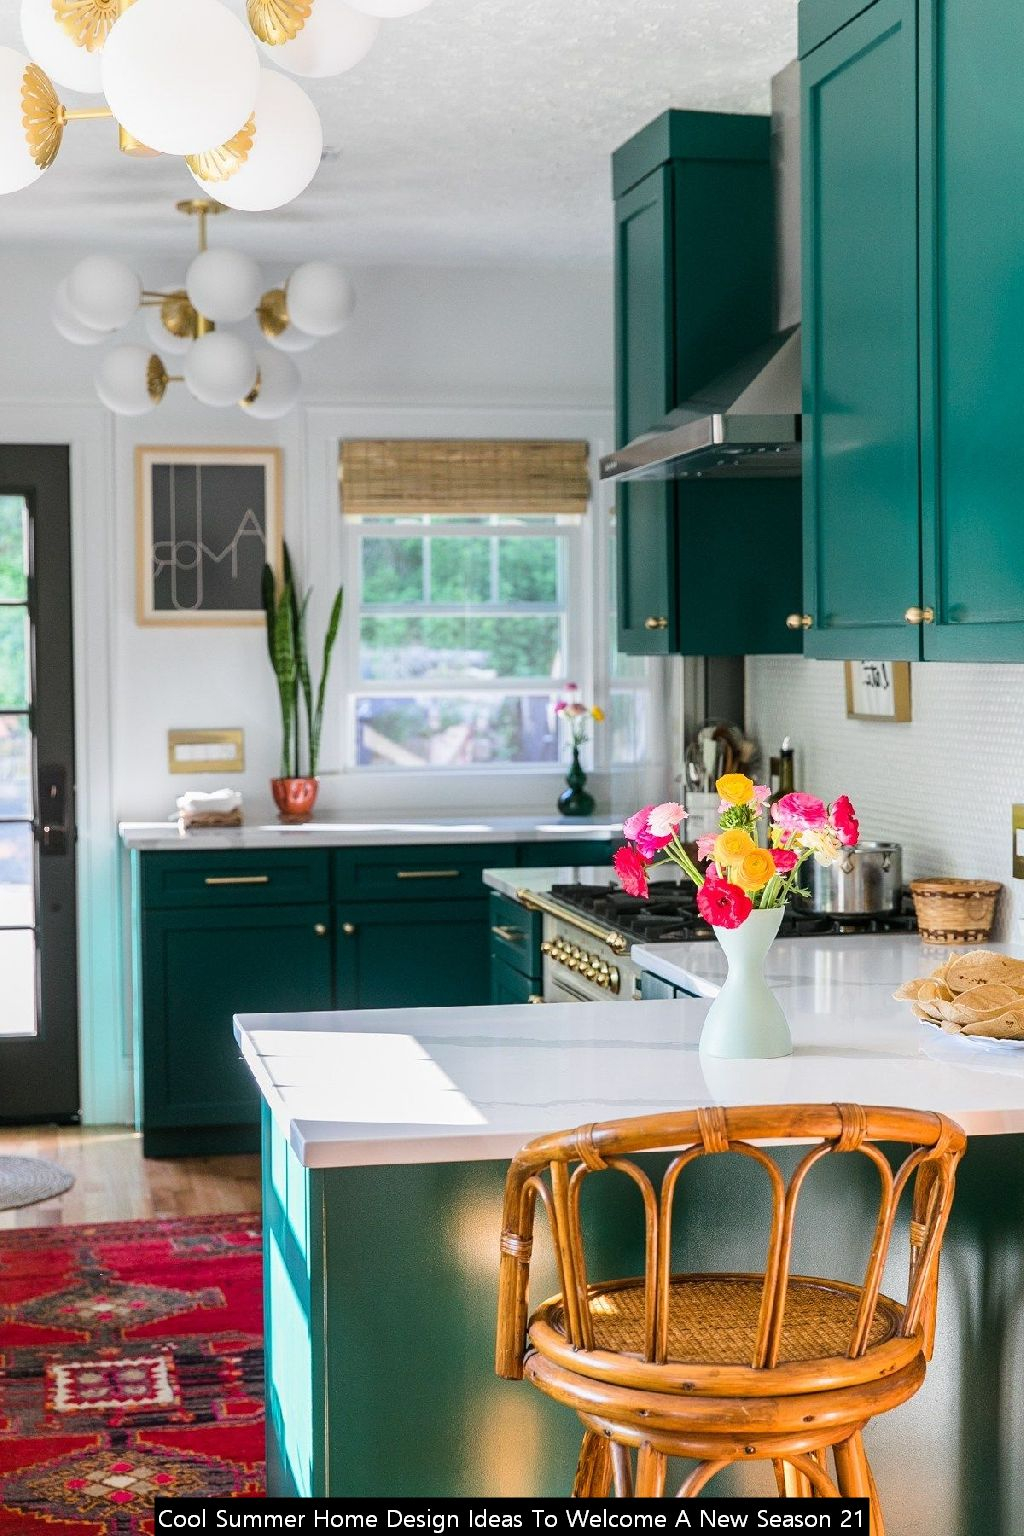 Cool Summer Home Design Ideas To Welcome A New Season 21